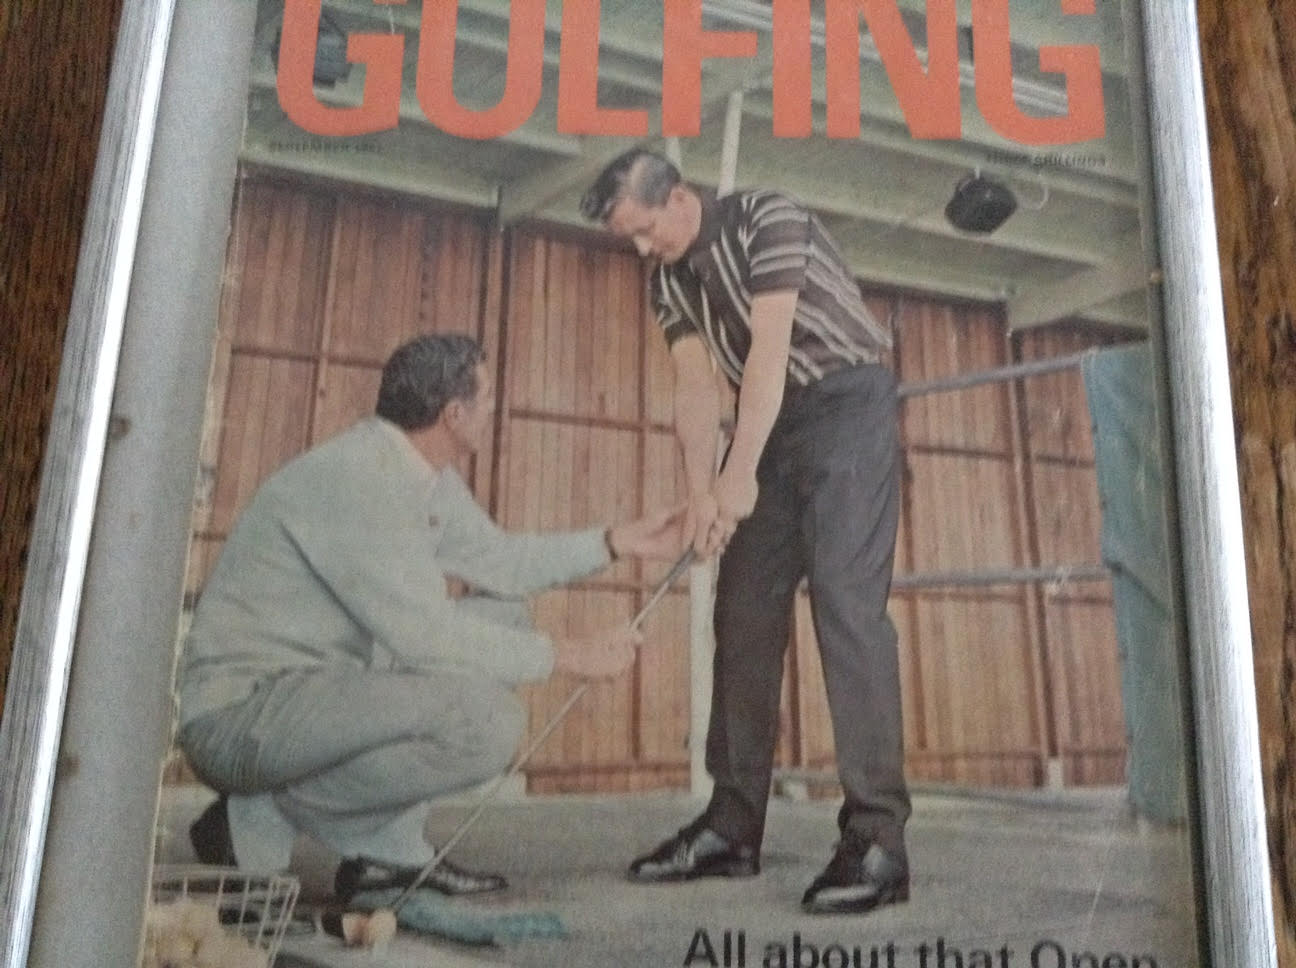 John Ingram appearing on the front cover of Golf Illustrated receiving a lesson from John Jacobs.